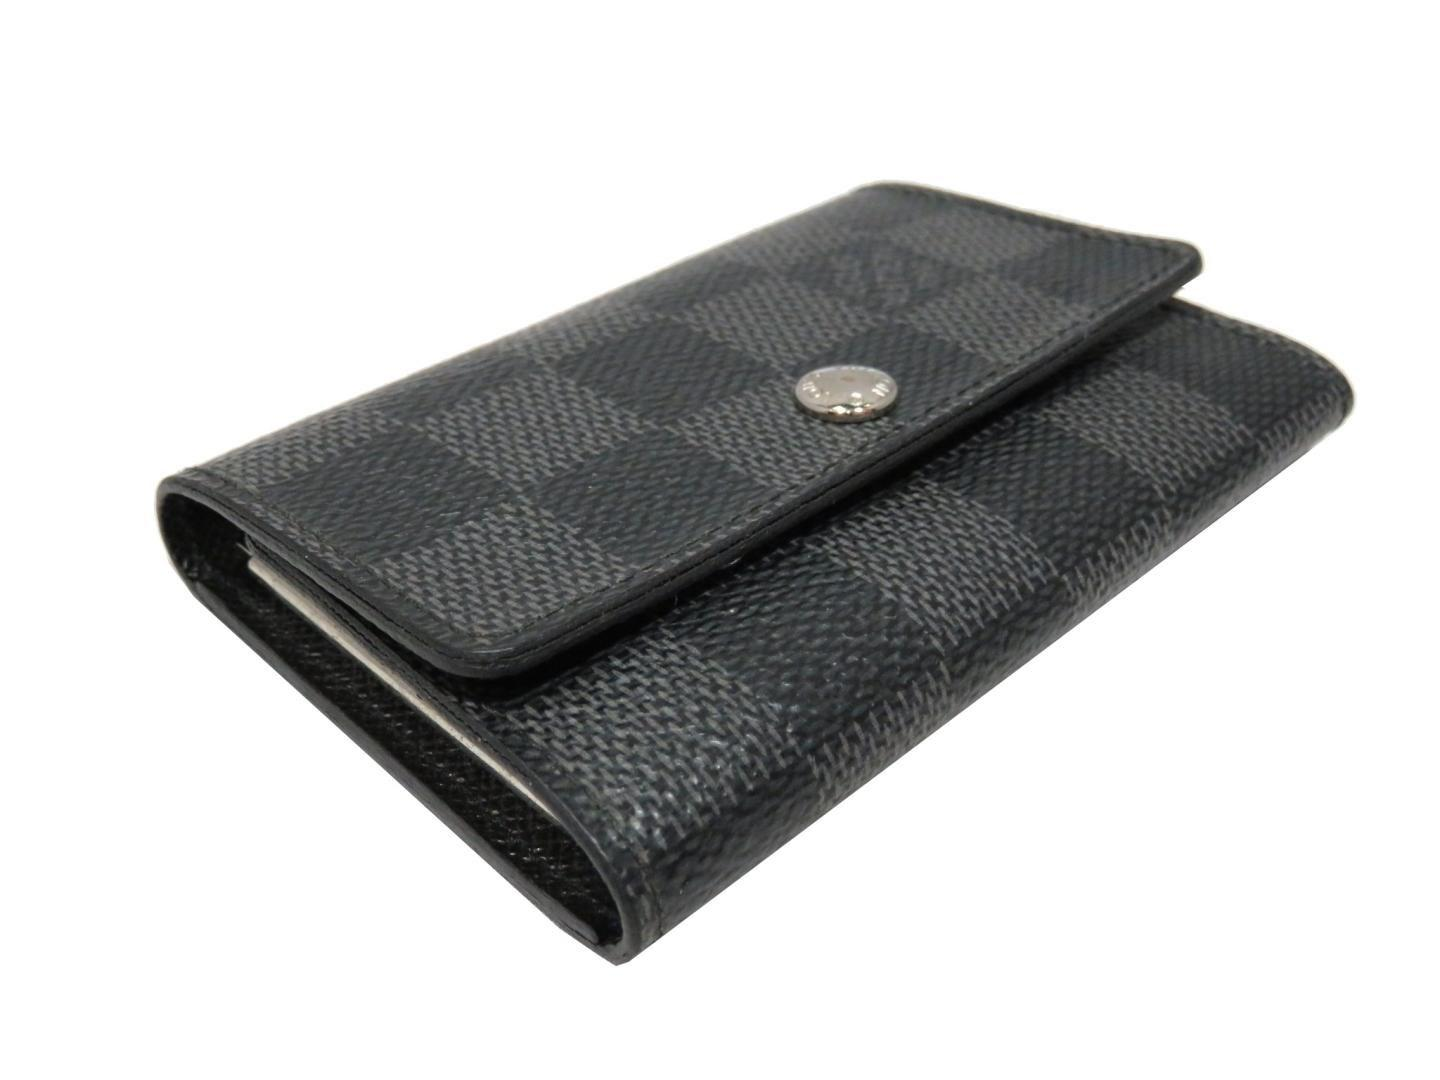 f55550e80074 Lyst - Louis Vuitton Multicles 6 Key Holder Damier Graphite N62662 ...